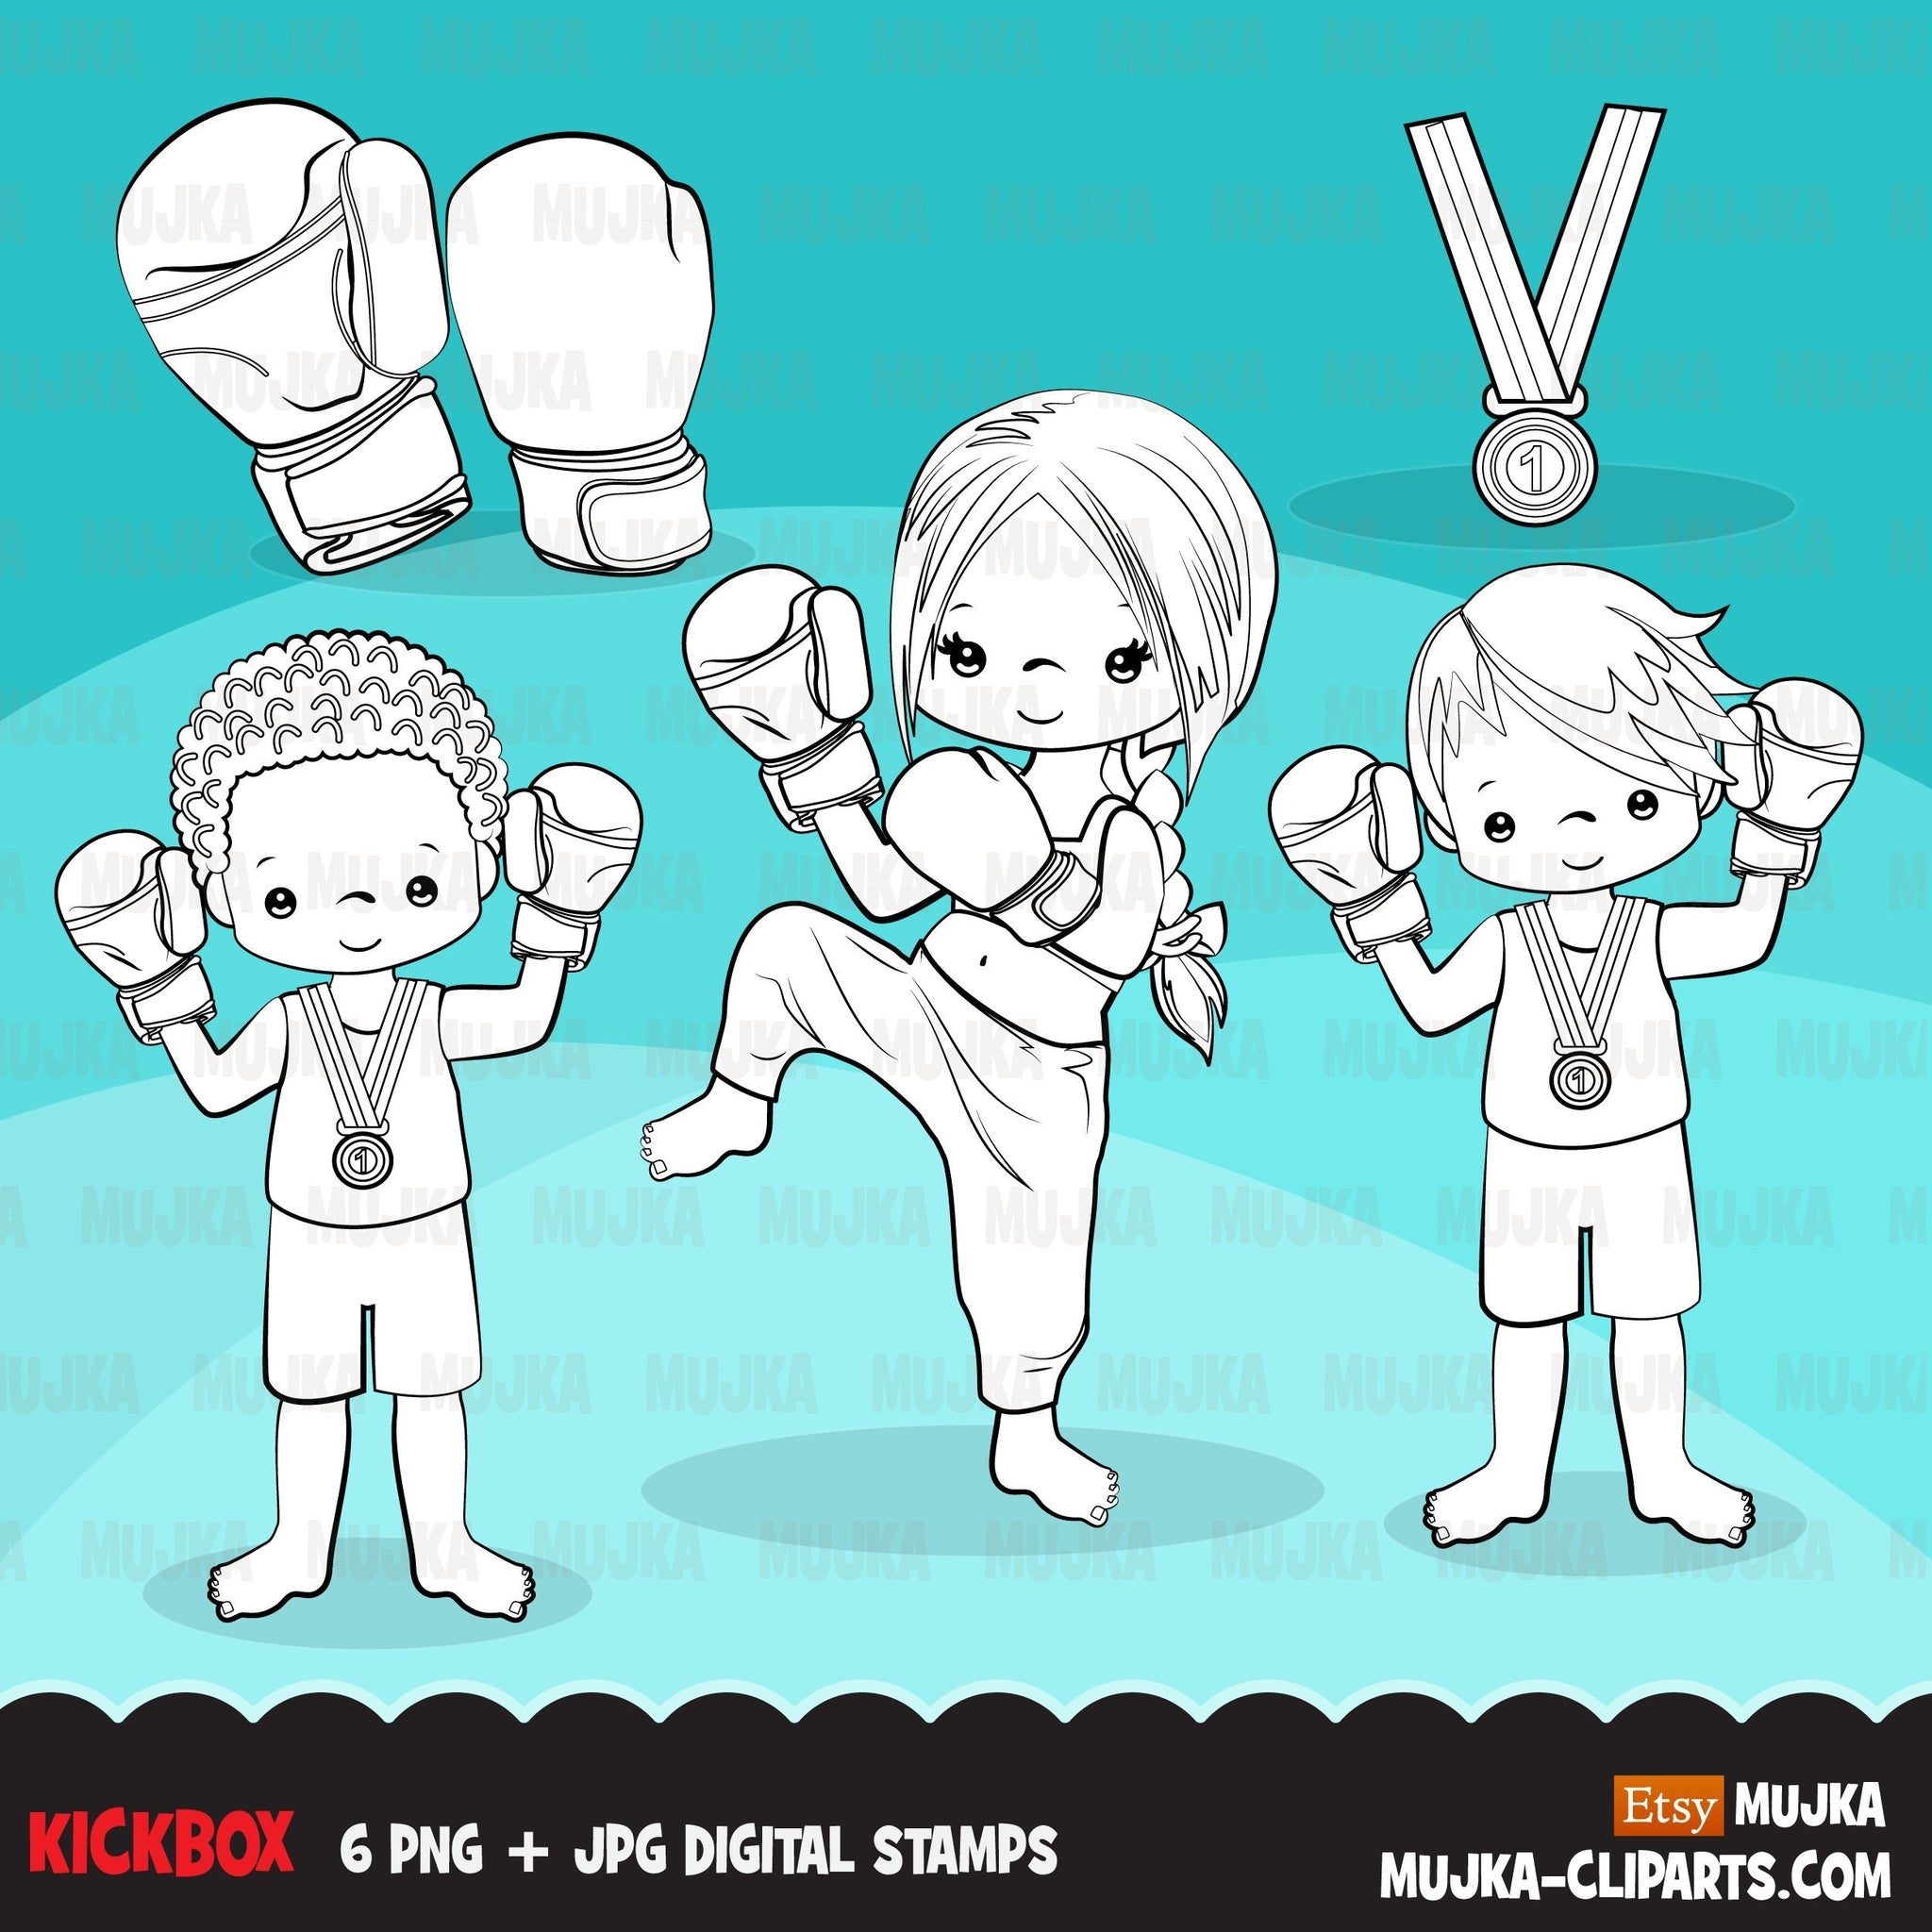 Kickboxing Digital Stamps, Sports Graphics, B&W clip art outline kickbox, boxing gloves